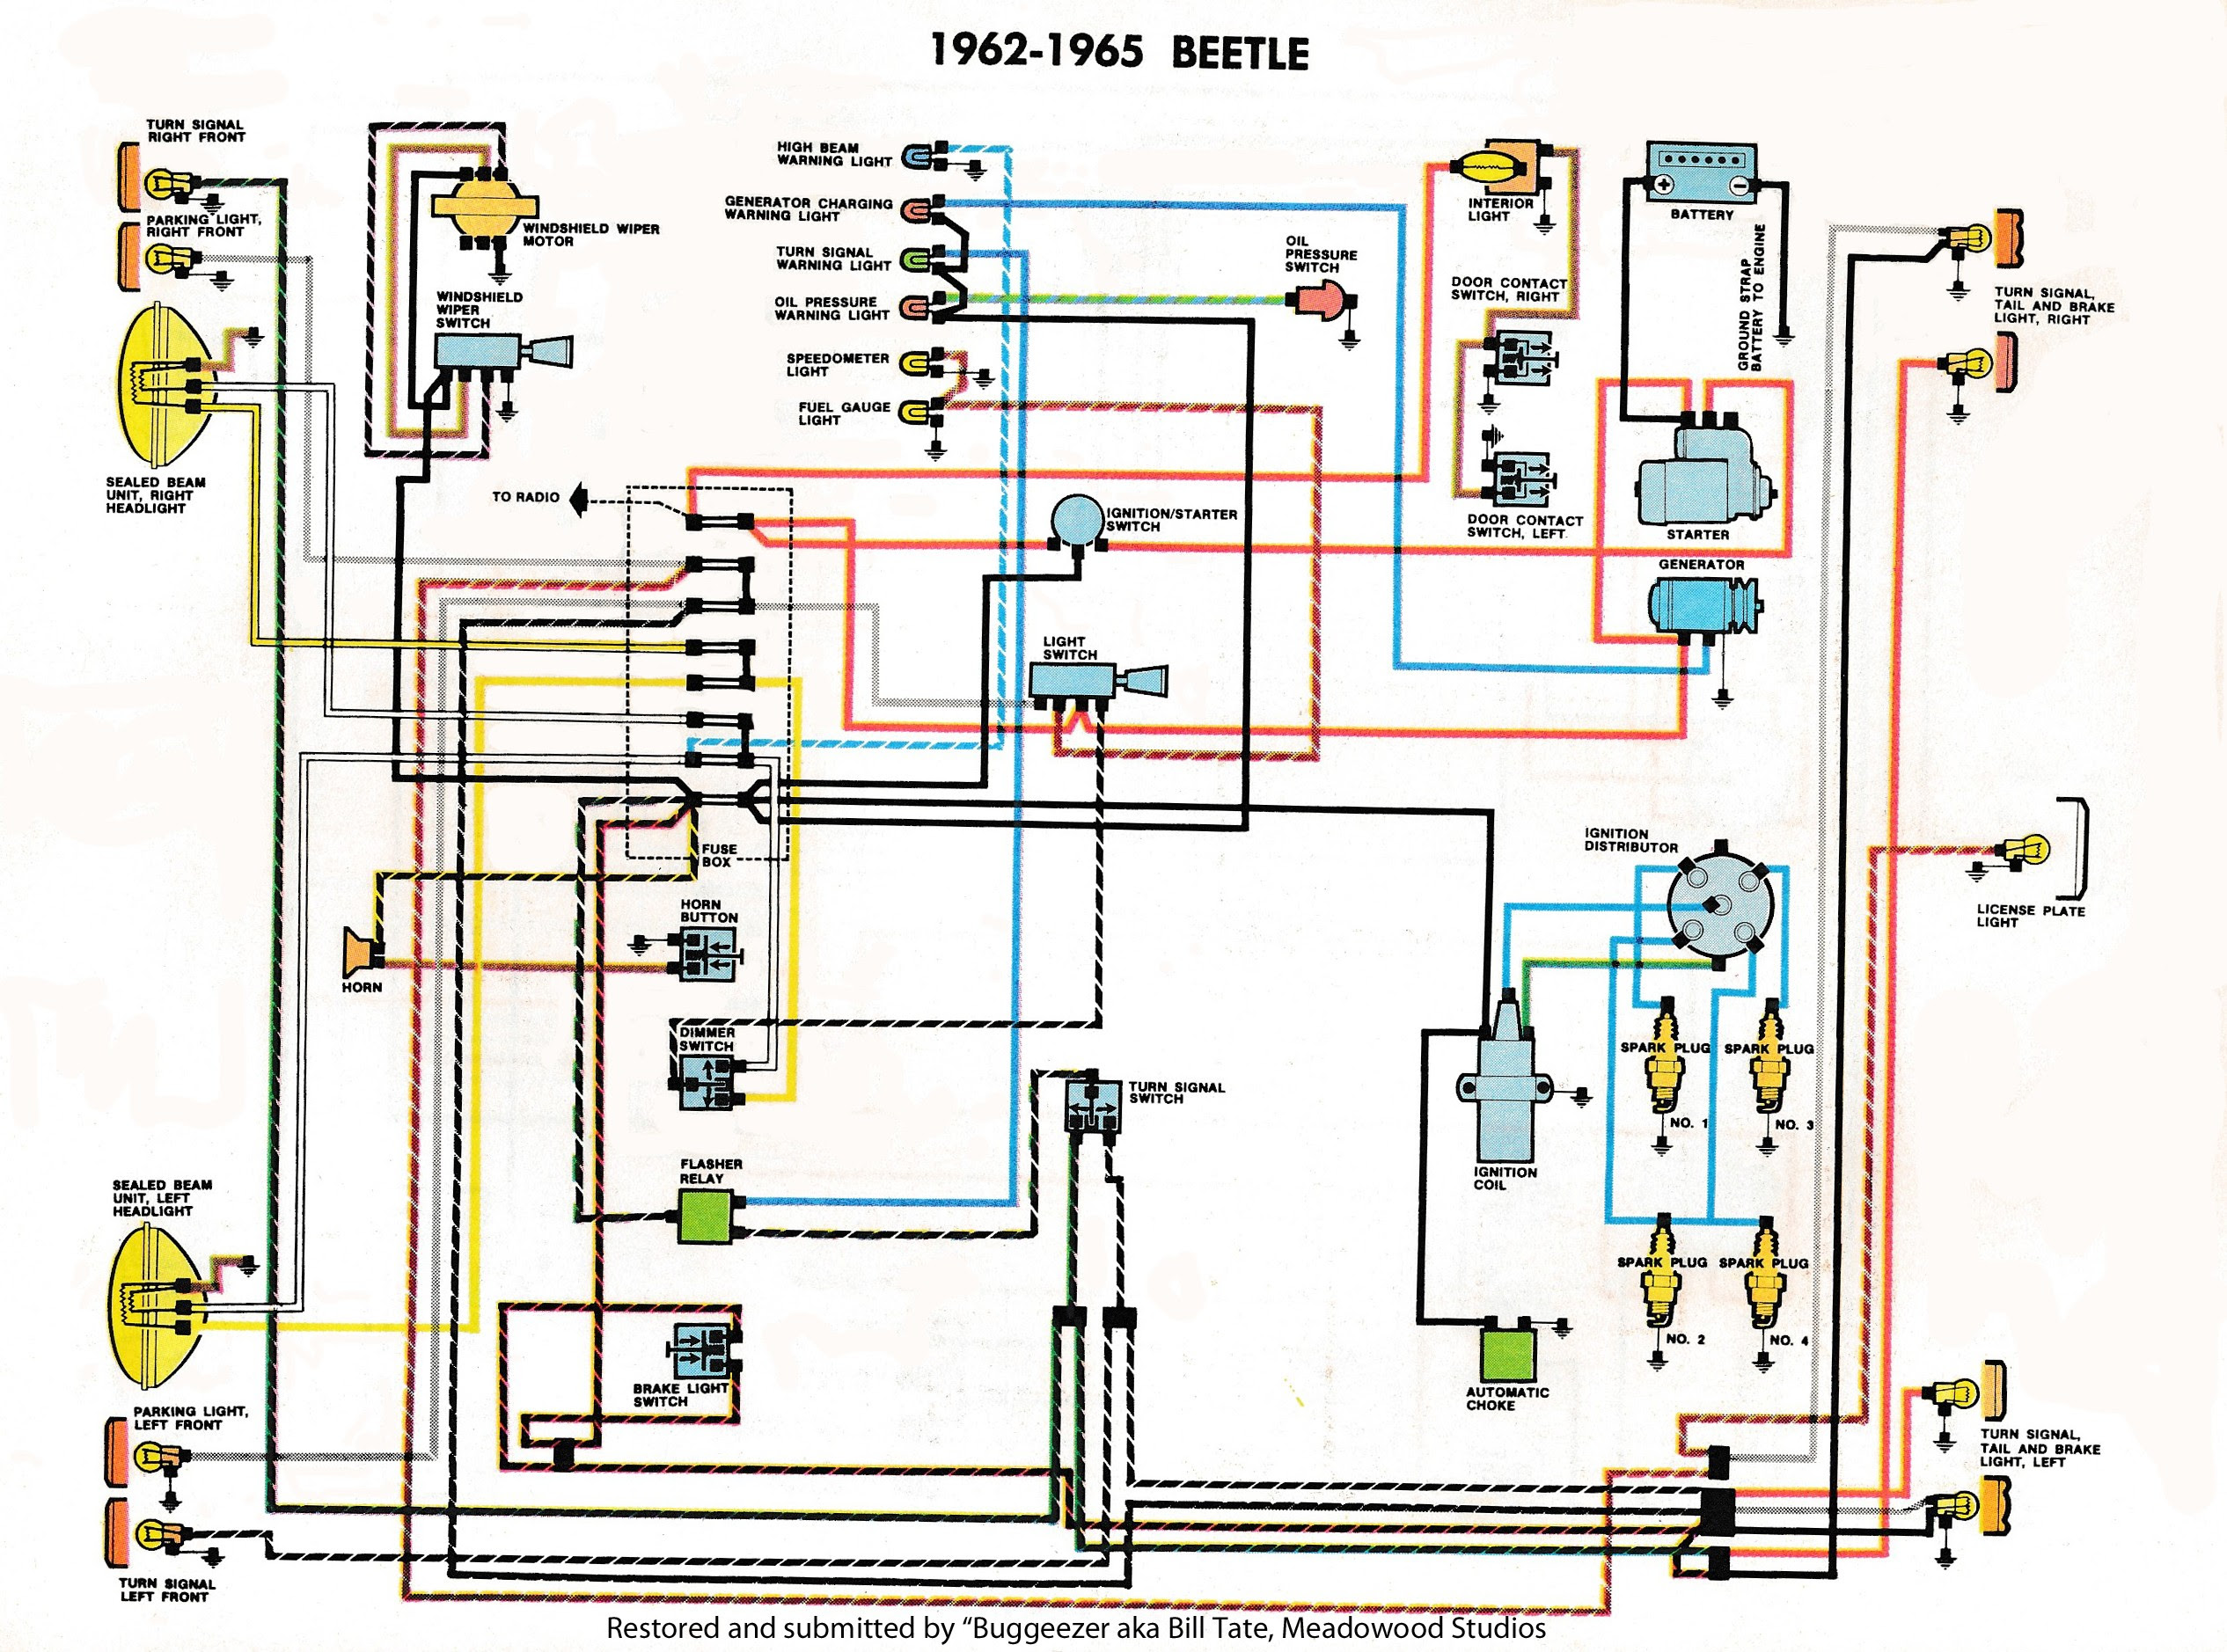 73 Vw Beetle Wiring Diagram - Wiring Diagram Networks | 74 Vw Bus Wiring Diagram Relays |  | Wiring Diagram Networks - blogger